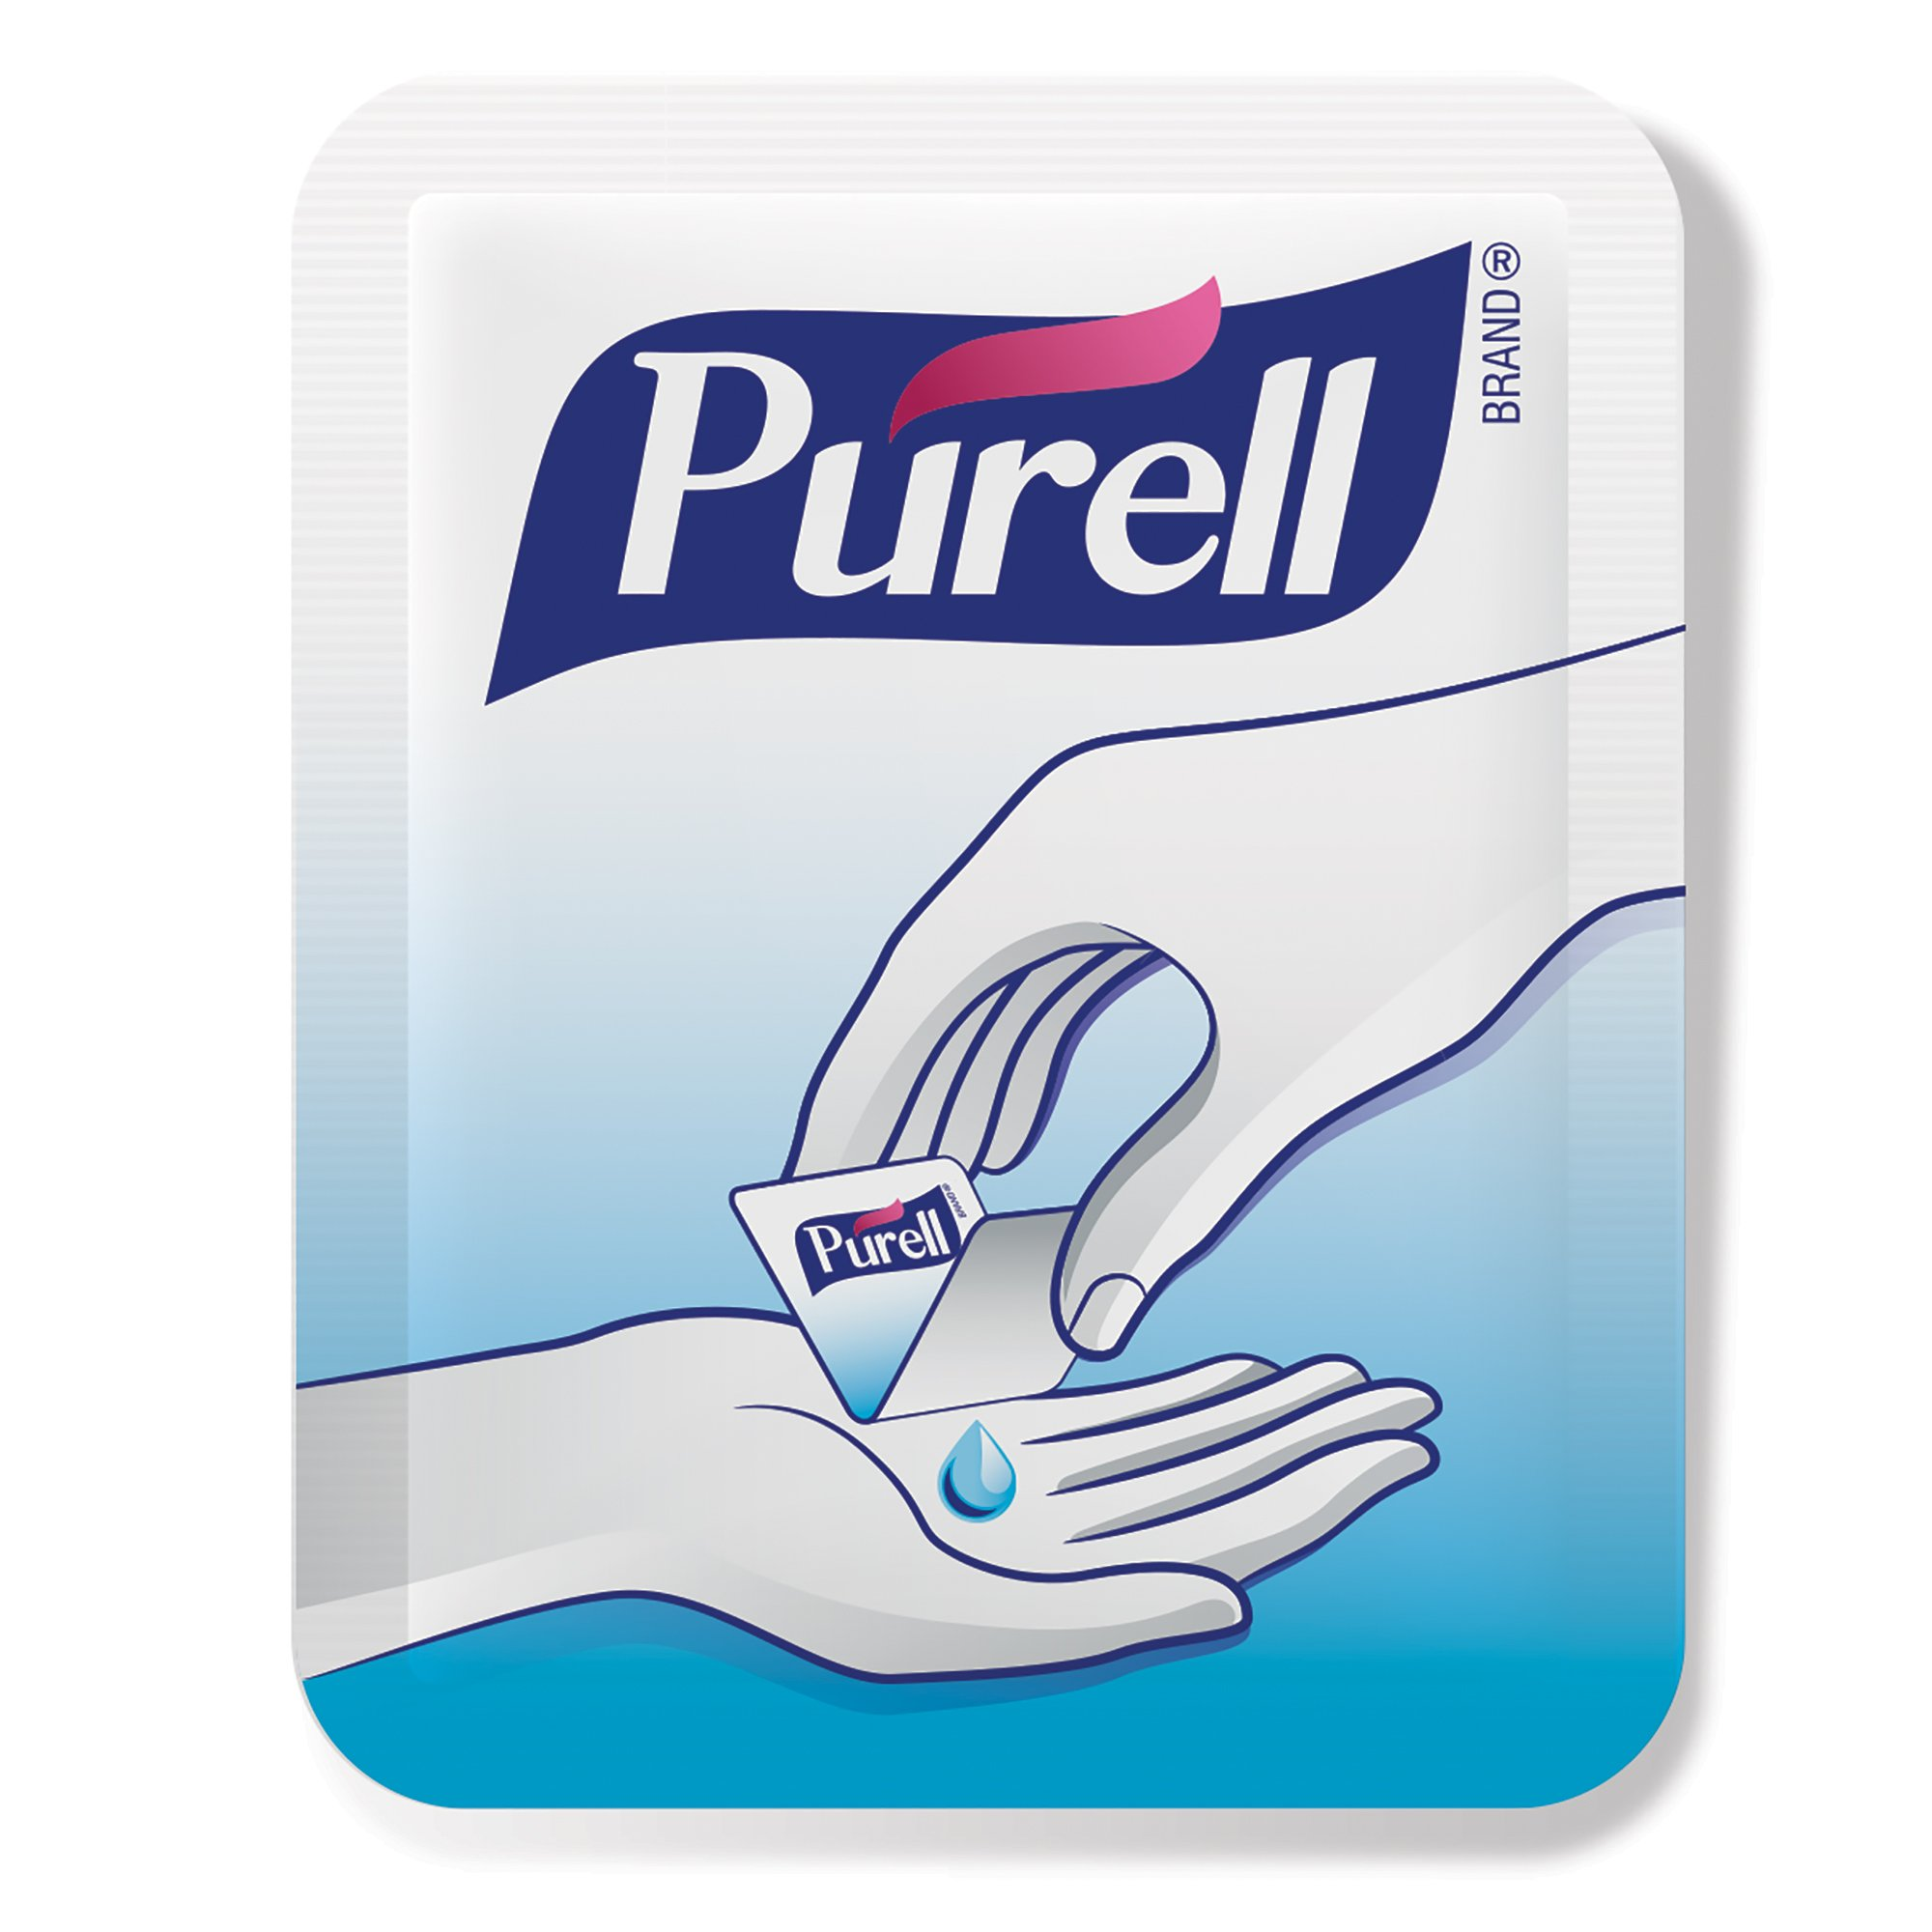 PURELL Advanced Hand Sanitizer Singles - Travel Size Single Use Individual Portable Packets, 125 count Self Dispensing Packets in a Display Box - 9620-12-125EC by Purell (Image #1)